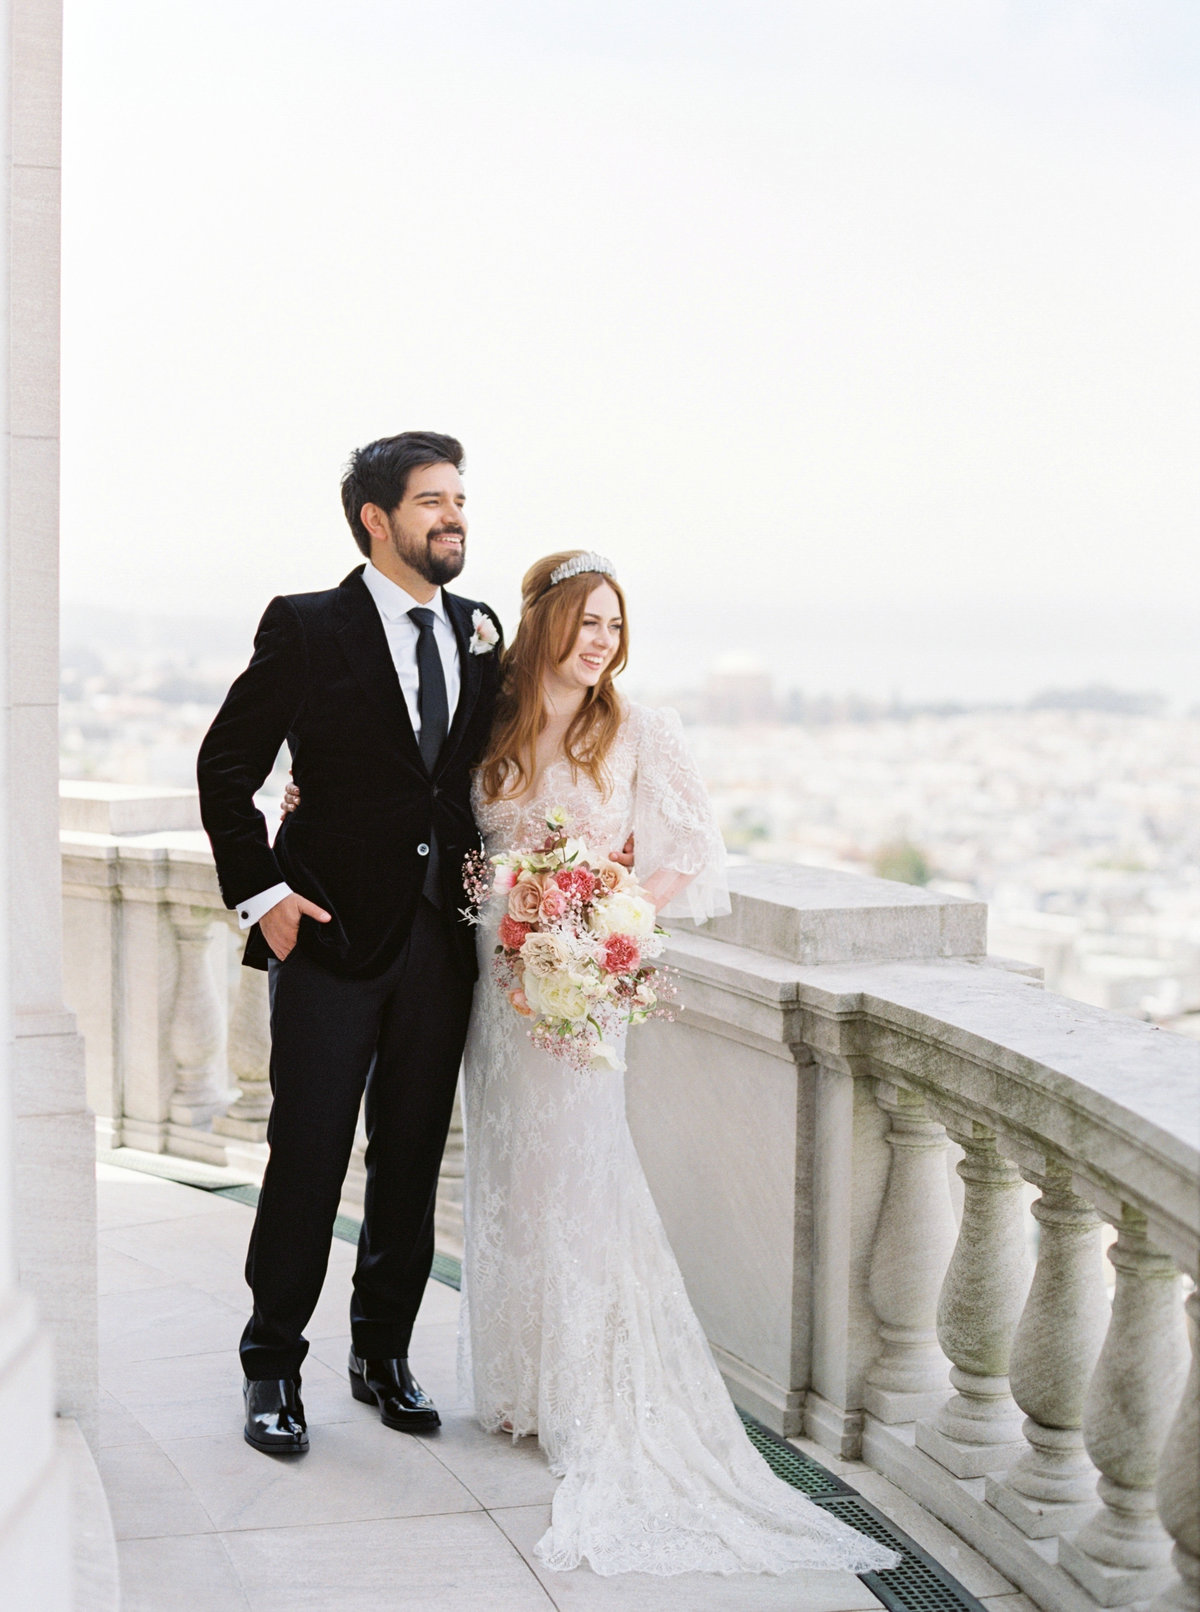 Jessica + Jesse Flood Mansion San Francisco Wedding Sneak Peeks | Cassie Valente Photography 0014